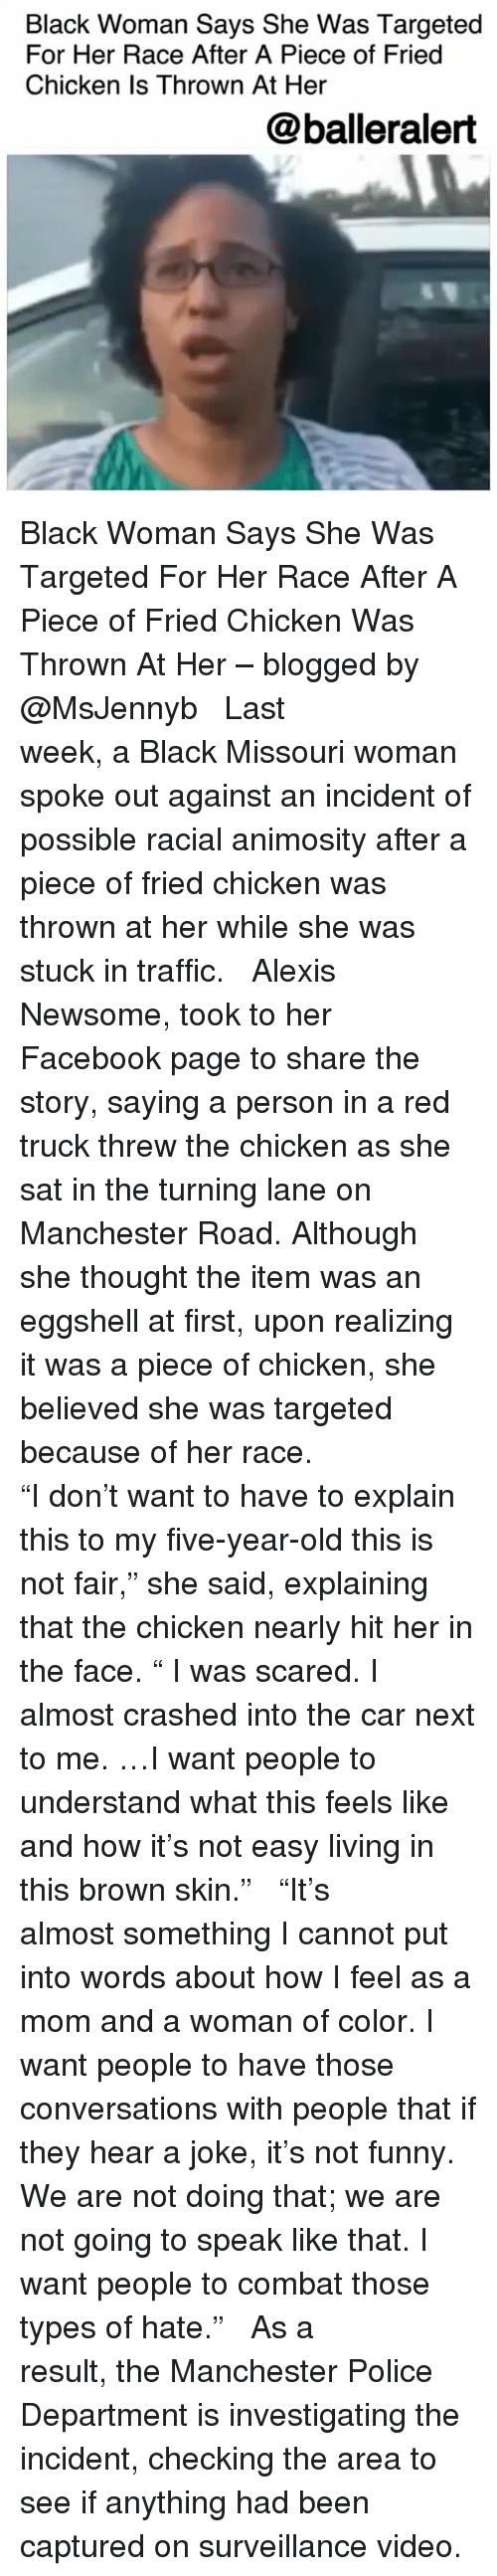 "Facebook, Funny, and Memes: Black Woman Says She Was Targeted  For Her Race After A Piece of Fried  Chicken Is Thrown At Her  @balleralert Black Woman Says She Was Targeted For Her Race After A Piece of Fried Chicken Was Thrown At Her – blogged by @MsJennyb ⠀⠀⠀⠀⠀⠀⠀ ⠀⠀⠀⠀⠀⠀⠀ Last week, a Black Missouri woman spoke out against an incident of possible racial animosity after a piece of fried chicken was thrown at her while she was stuck in traffic. ⠀⠀⠀⠀⠀⠀⠀ ⠀⠀⠀⠀⠀⠀⠀ Alexis Newsome, took to her Facebook page to share the story, saying a person in a red truck threw the chicken as she sat in the turning lane on Manchester Road. Although she thought the item was an eggshell at first, upon realizing it was a piece of chicken, she believed she was targeted because of her race. ⠀⠀⠀⠀⠀⠀⠀ ⠀⠀⠀⠀⠀⠀⠀ ""I don't want to have to explain this to my five-year-old this is not fair,"" she said, explaining that the chicken nearly hit her in the face. "" I was scared. I almost crashed into the car next to me. …I want people to understand what this feels like and how it's not easy living in this brown skin."" ⠀⠀⠀⠀⠀⠀⠀ ⠀⠀⠀⠀⠀⠀⠀ ""It's almost something I cannot put into words about how I feel as a mom and a woman of color. I want people to have those conversations with people that if they hear a joke, it's not funny. We are not doing that; we are not going to speak like that. I want people to combat those types of hate."" ⠀⠀⠀⠀⠀⠀⠀ ⠀⠀⠀⠀⠀⠀⠀ As a result, the Manchester Police Department is investigating the incident, checking the area to see if anything had been captured on surveillance video."